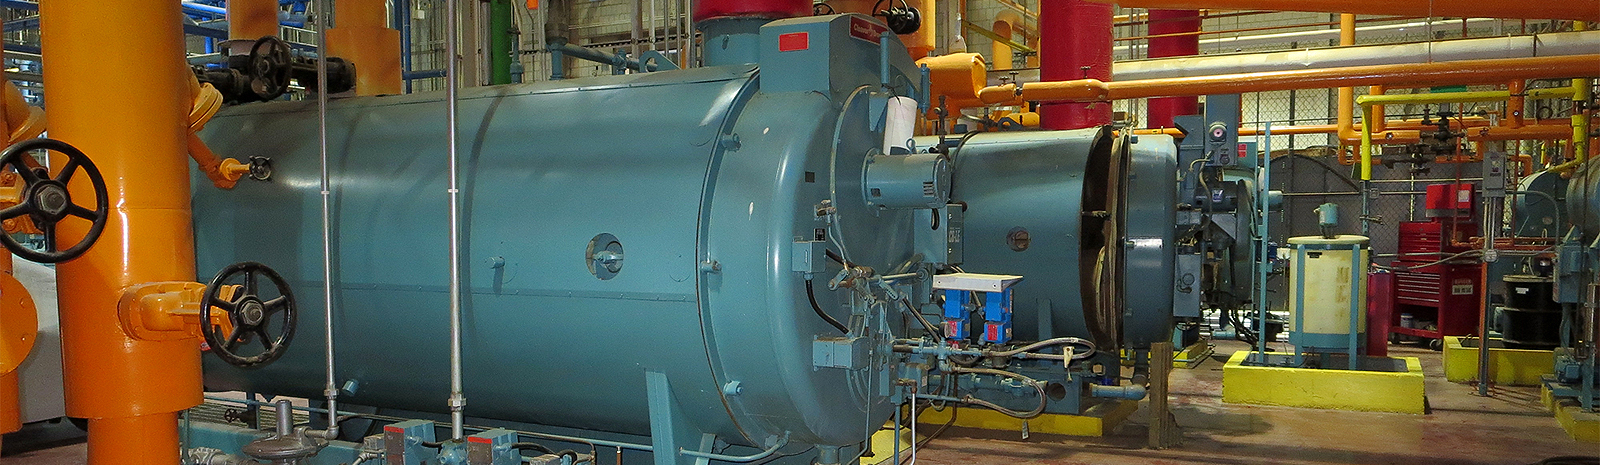 Energy Equipment is a Distributor of New & Used Boilers, Boiler Parts & Boiler Room Equipment